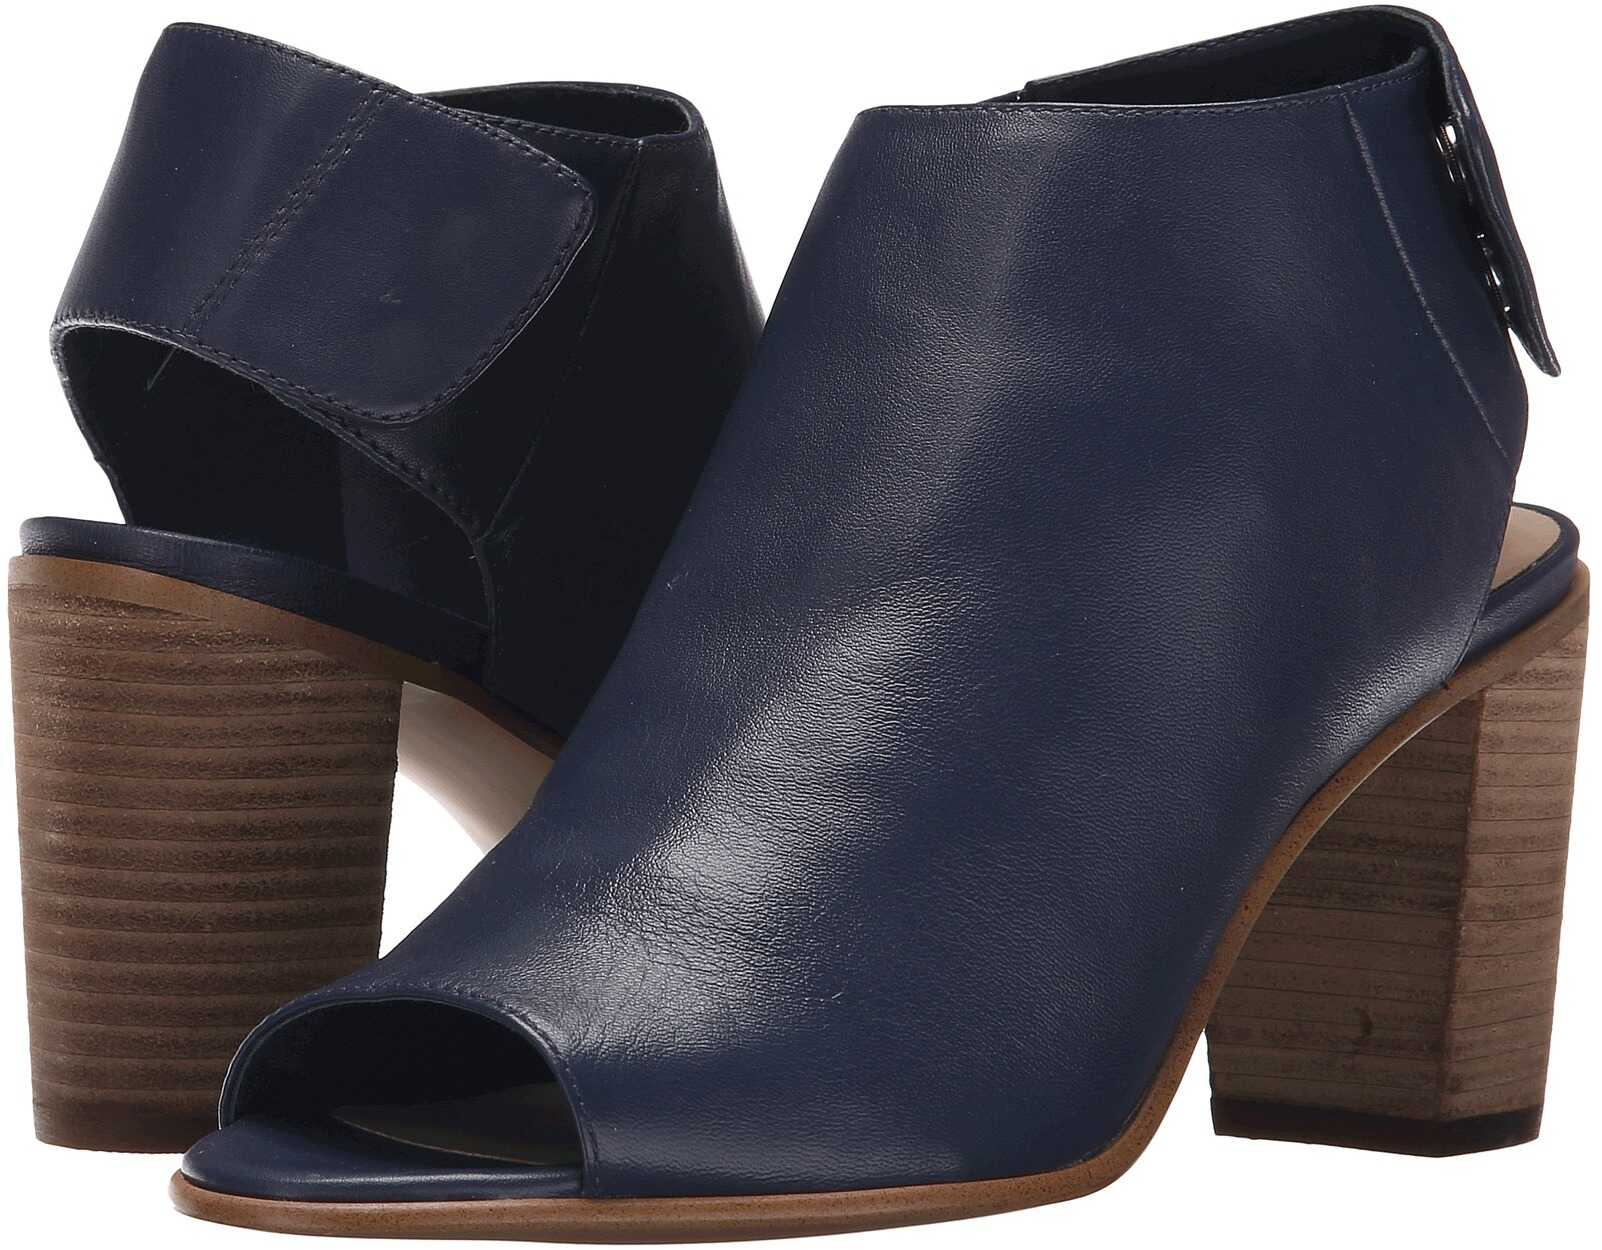 Steve Madden Nonstp Heel Blue Leather